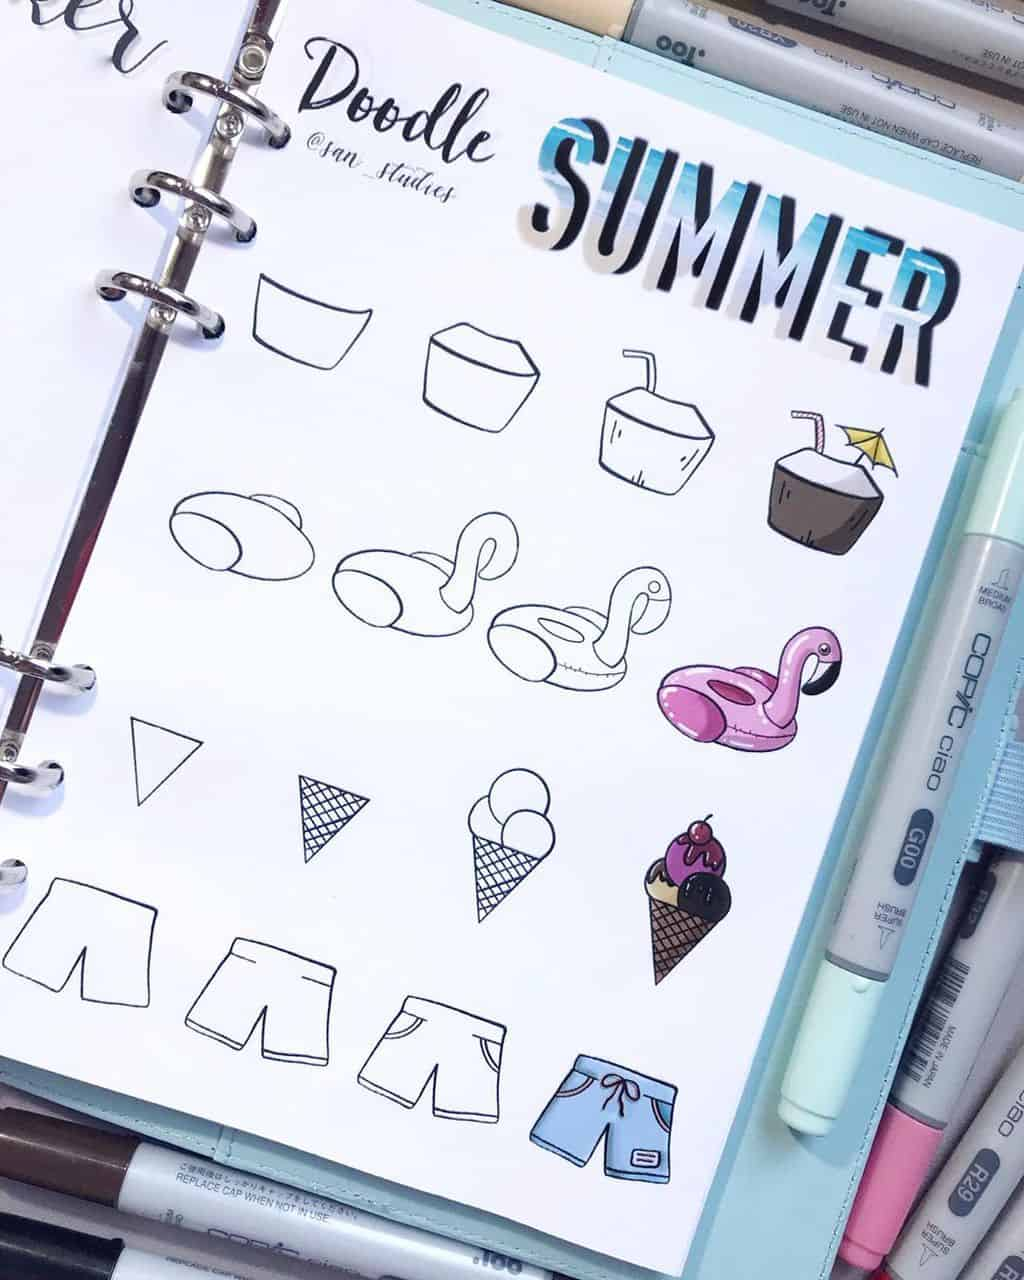 15 Simple And Fun Summer Bullet Journal Doodles